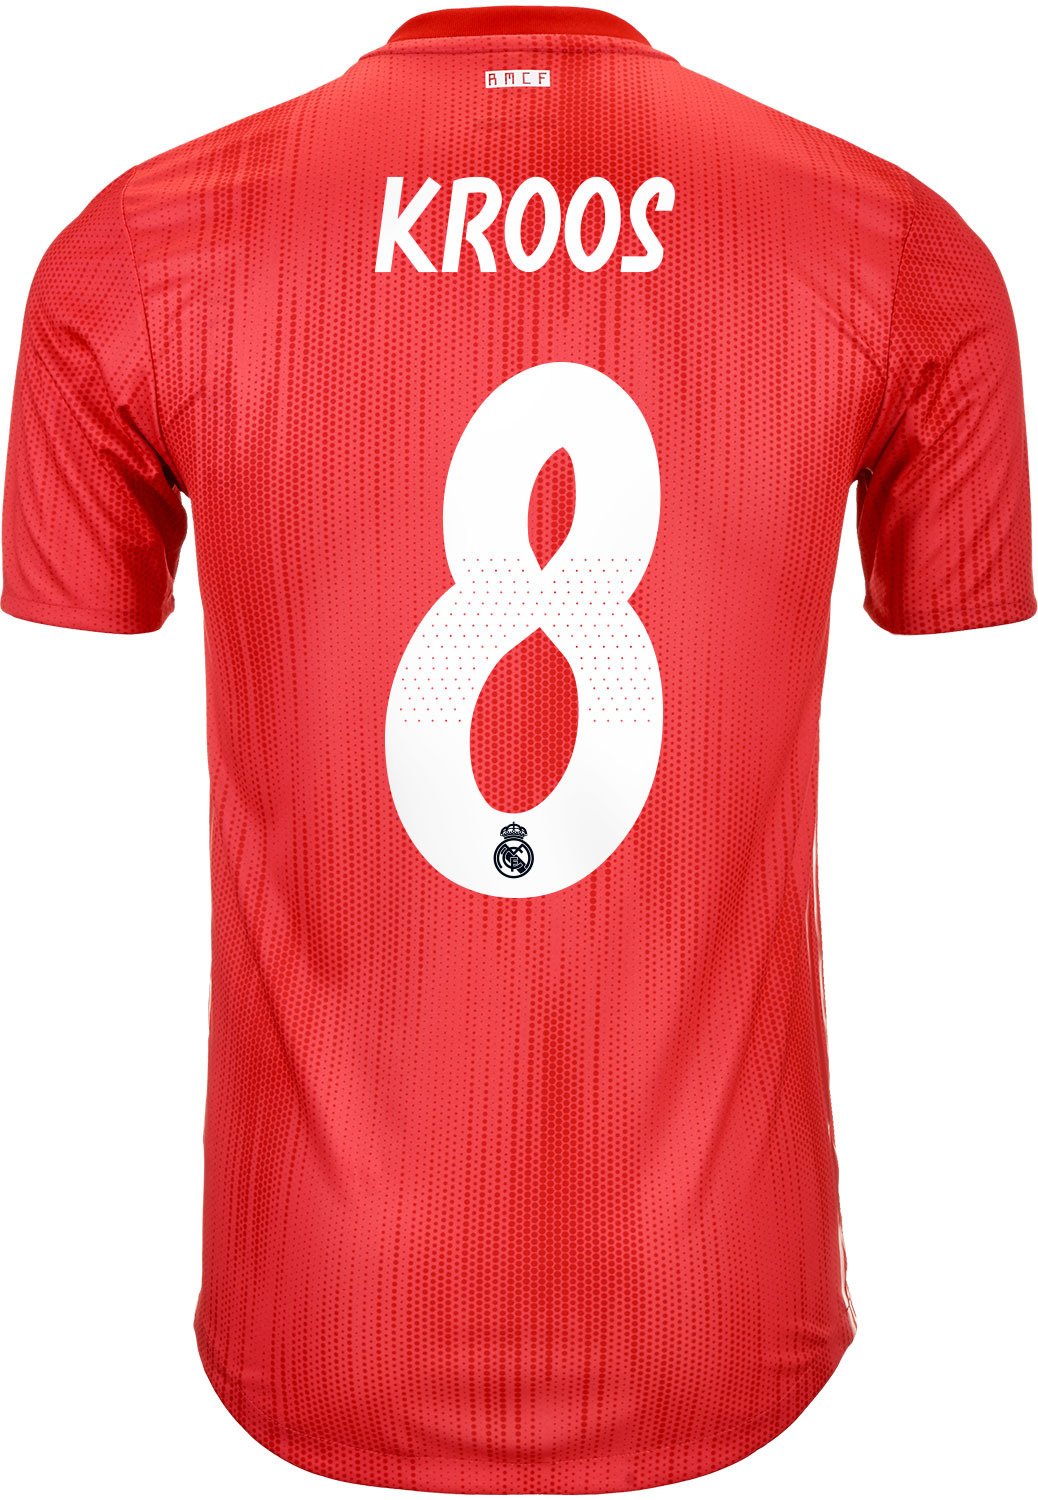 lowest price 3facc 0e6cb 2018/19 adidas Toni Kroos Real Madrid Authentic 3rd Jersey ...